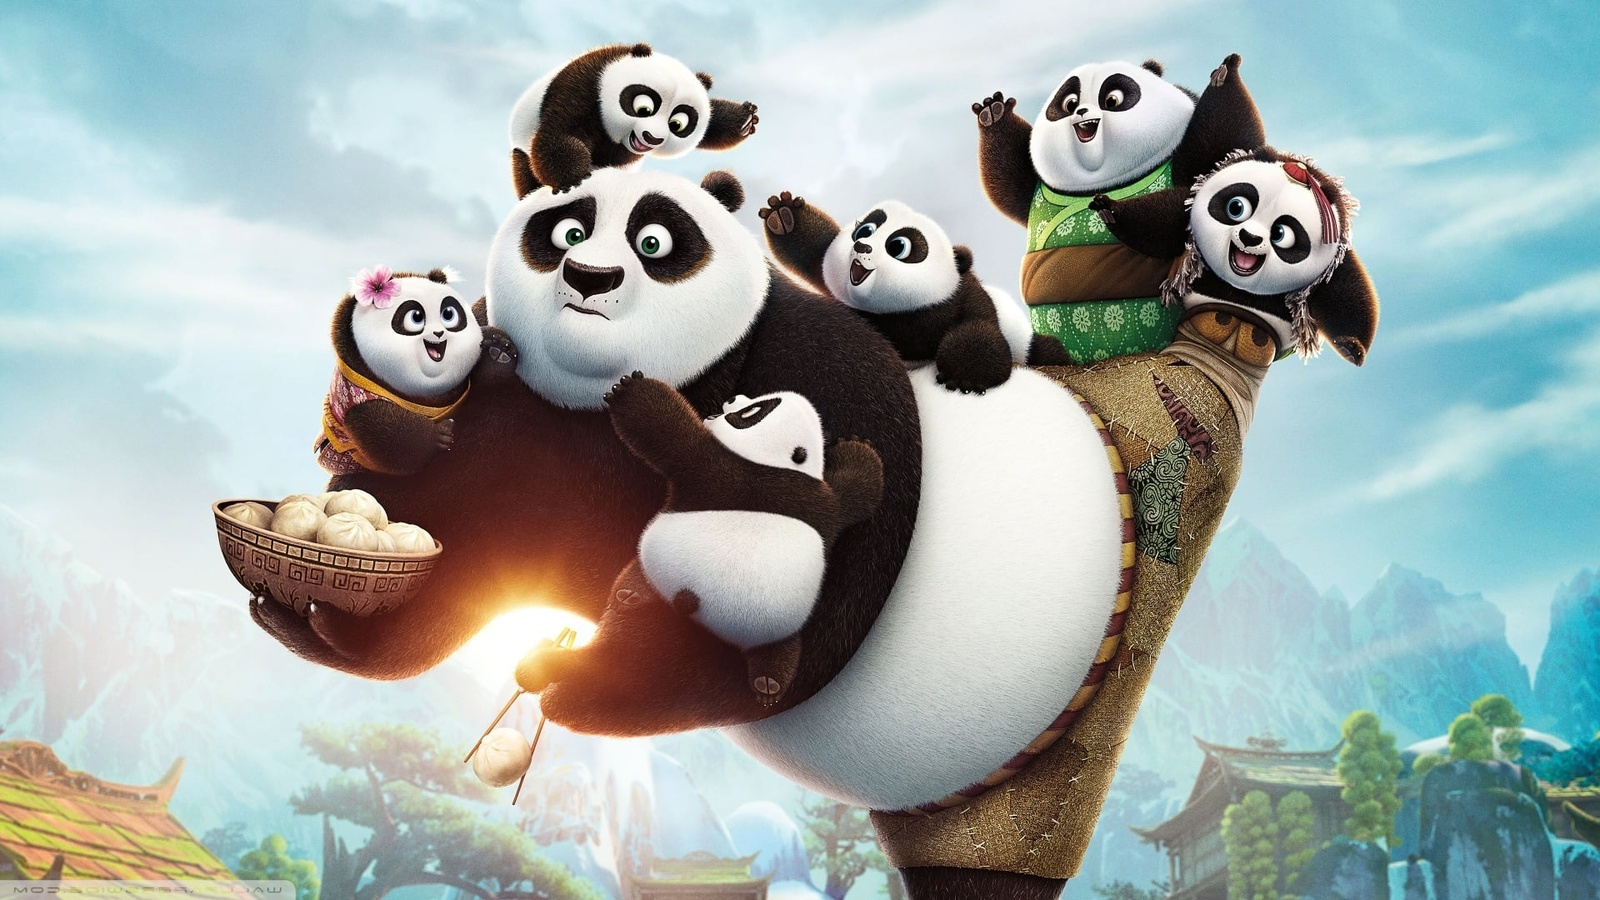 Кунг-фу Панда 3 / Kung Fu Panda 3 background